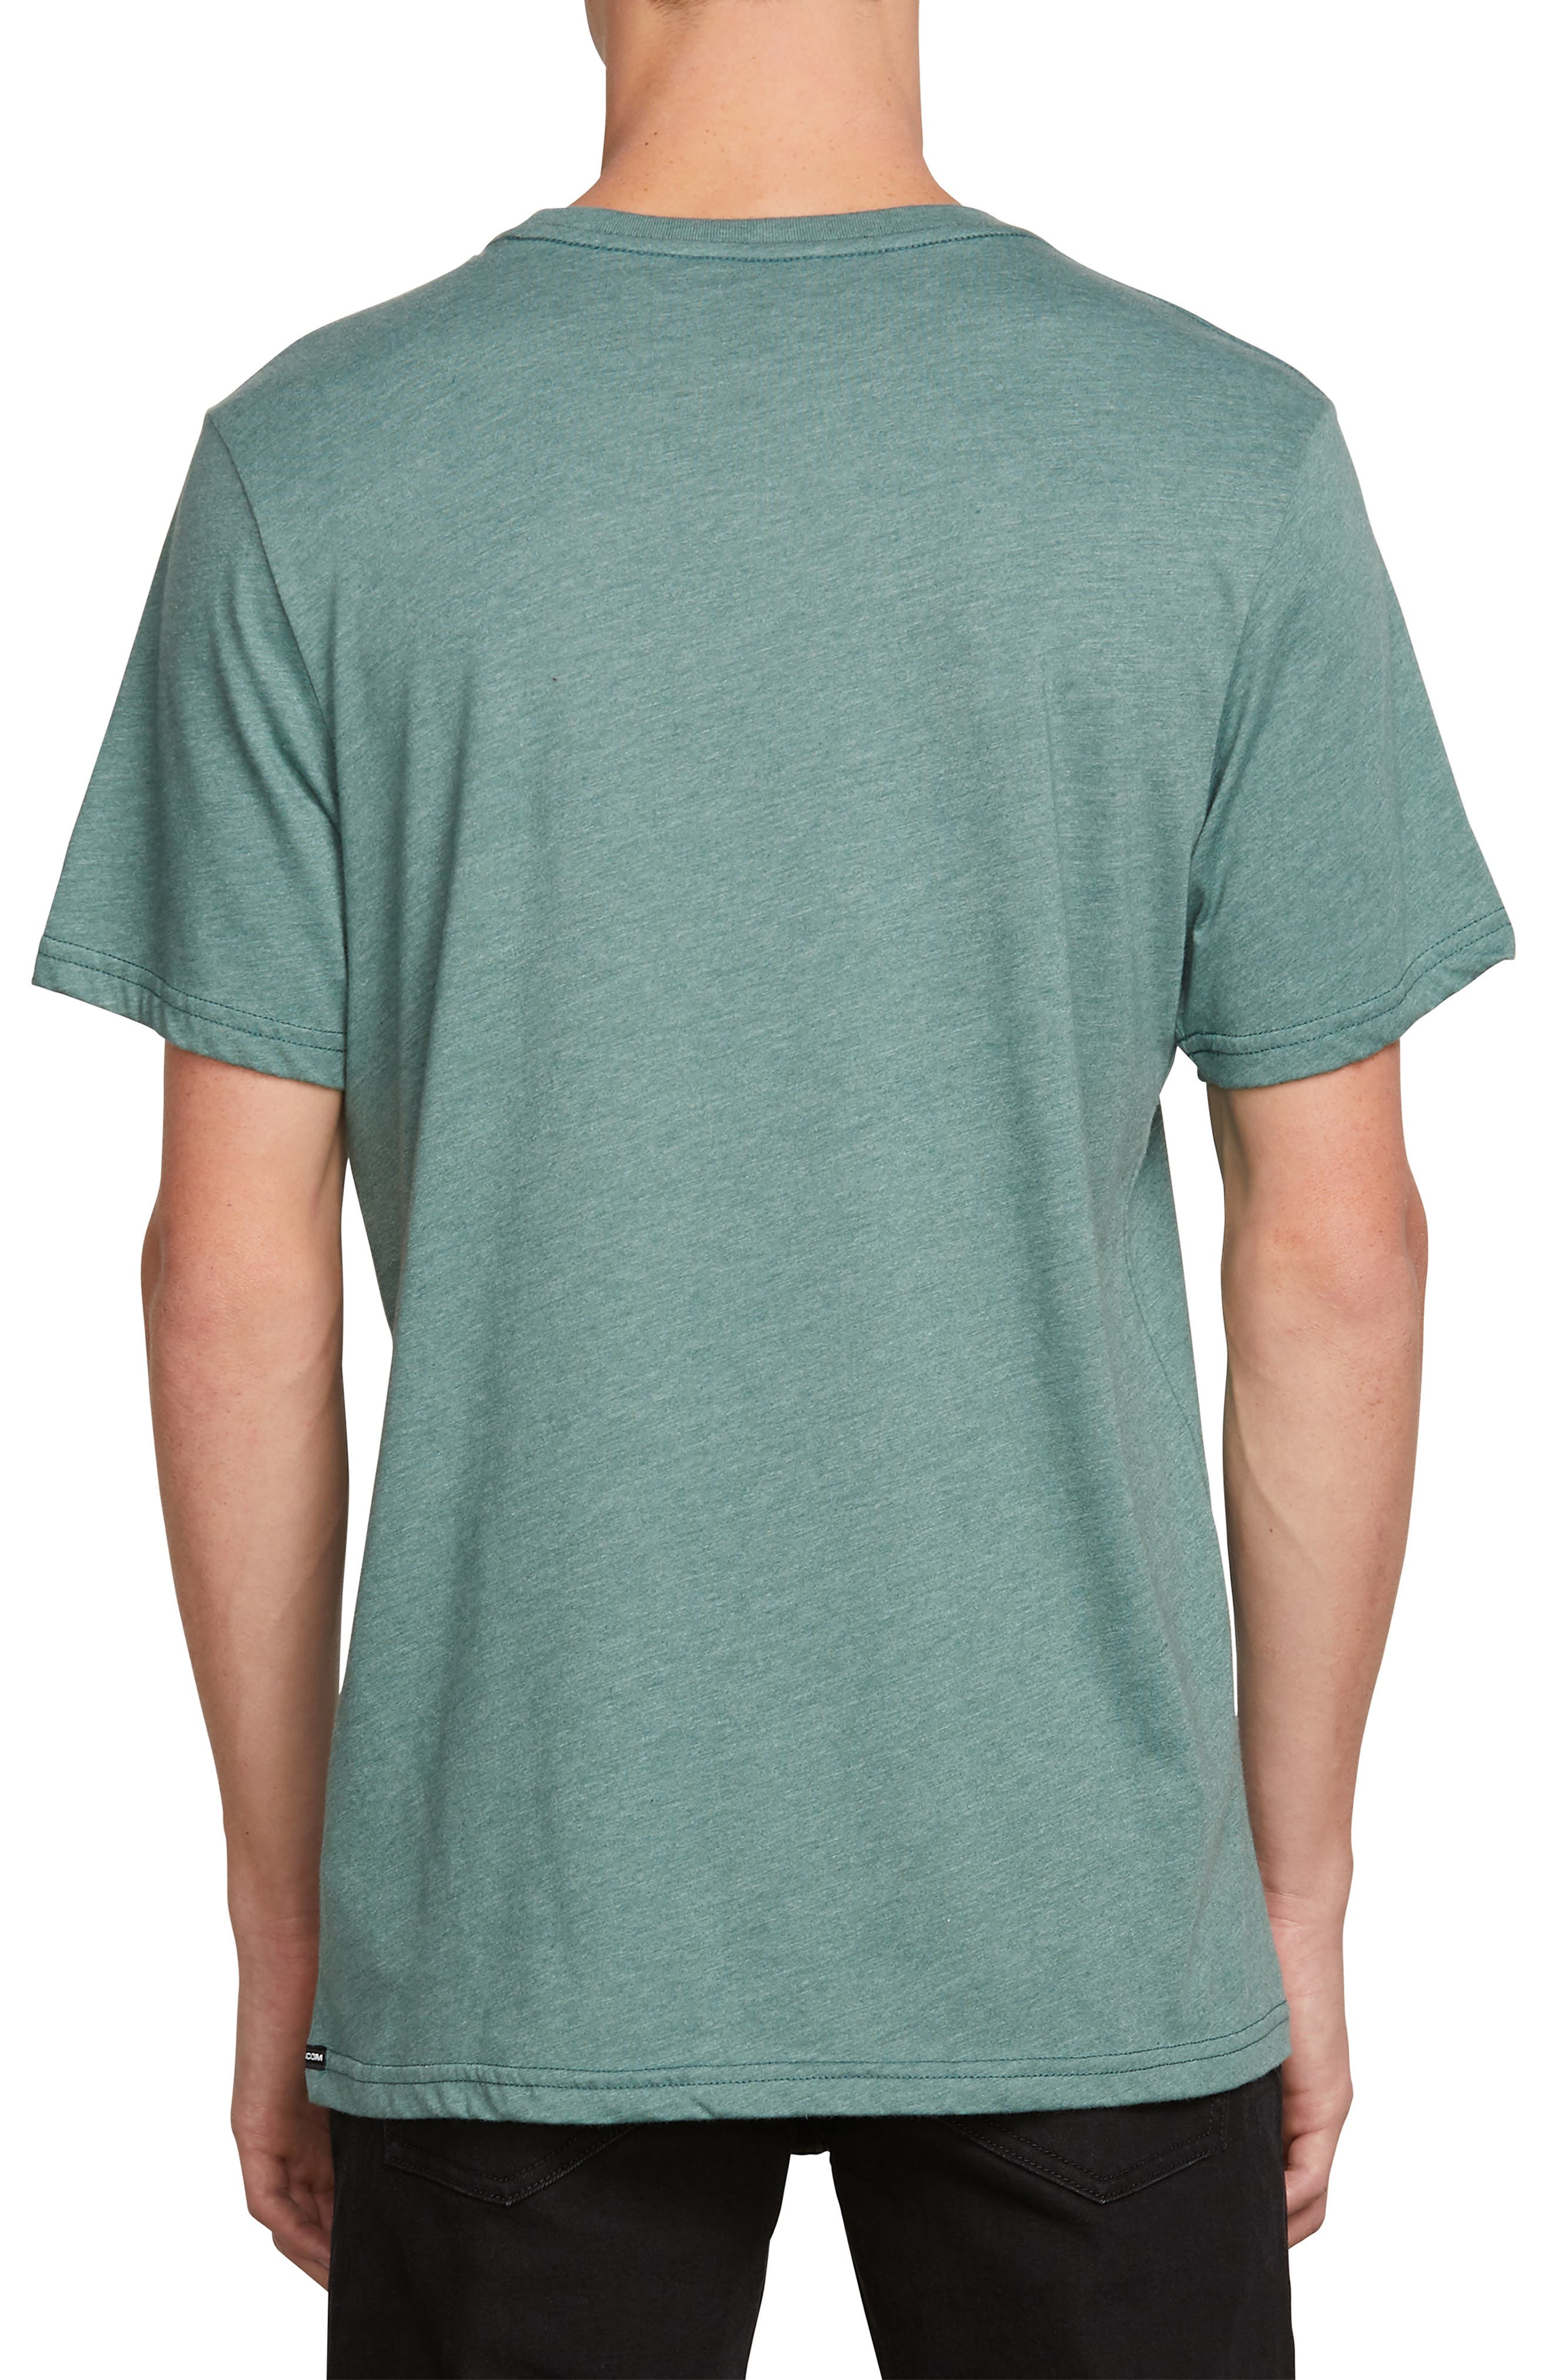 VOLCOM,                             Path to Freedom Graphic T-Shirt,                             Alternate thumbnail 2, color,                             366